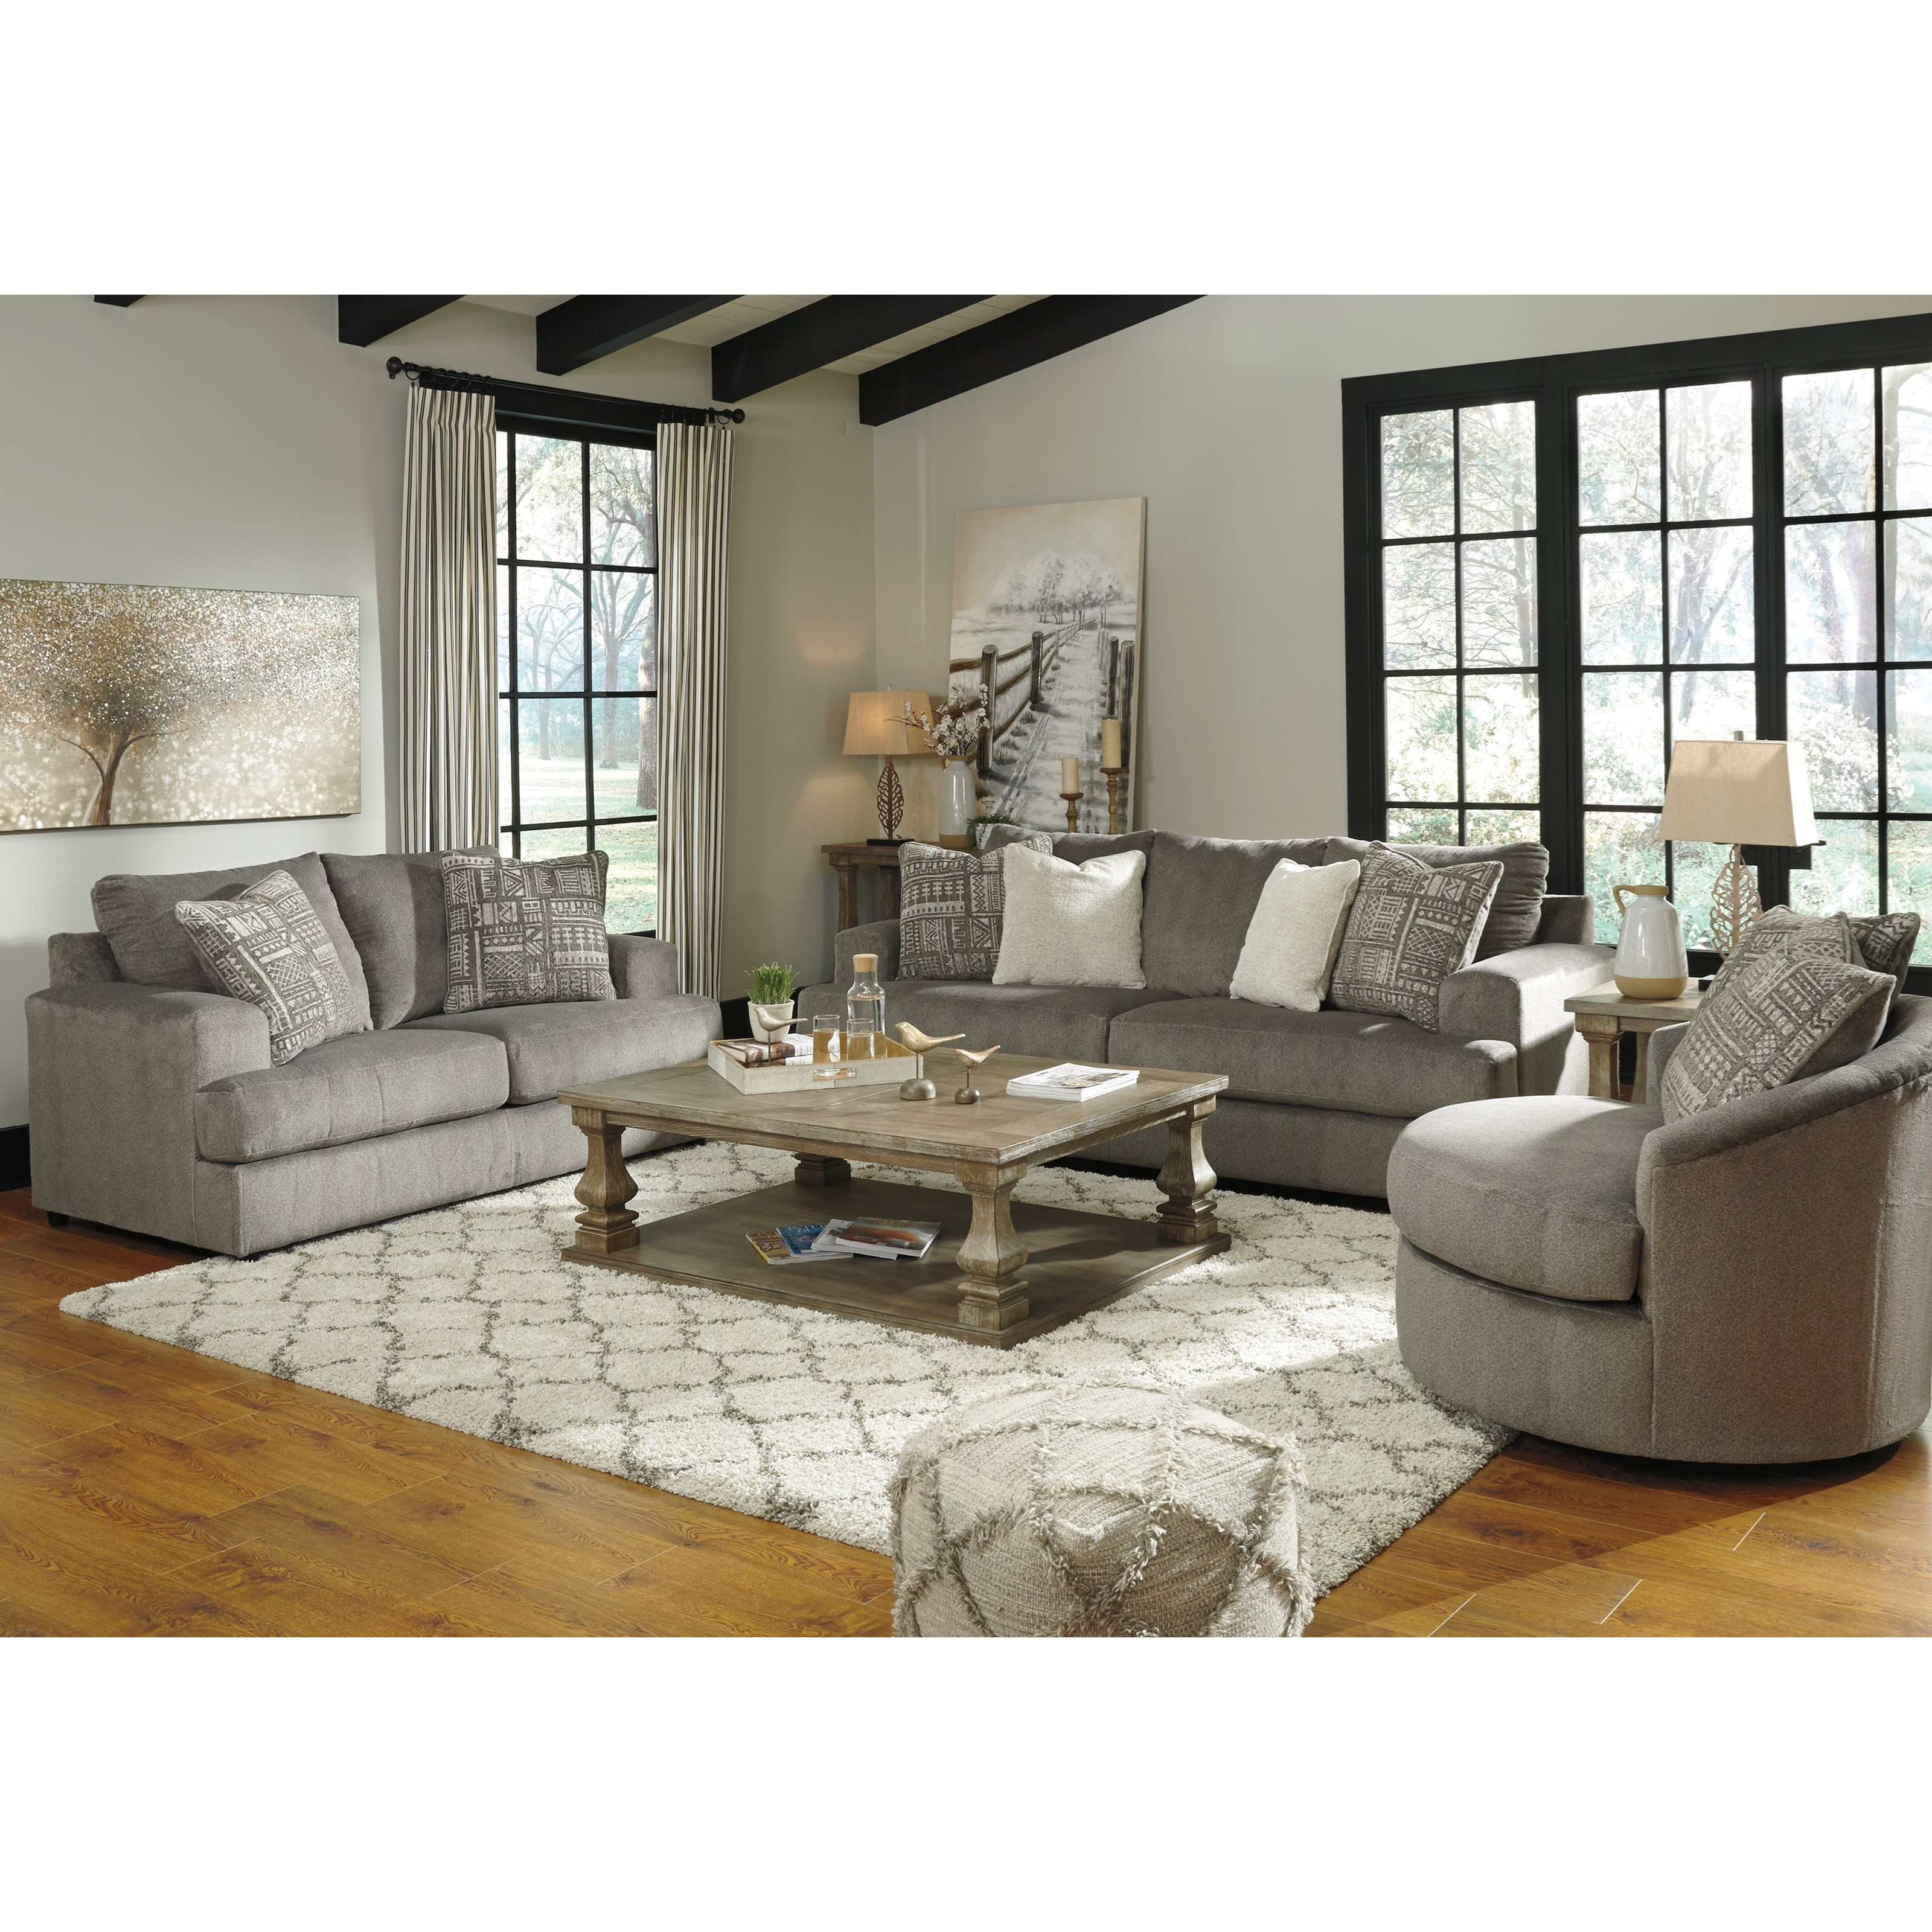 Soletren Stationary Living Room Group by Ashley (Signature Design) at Johnny Janosik